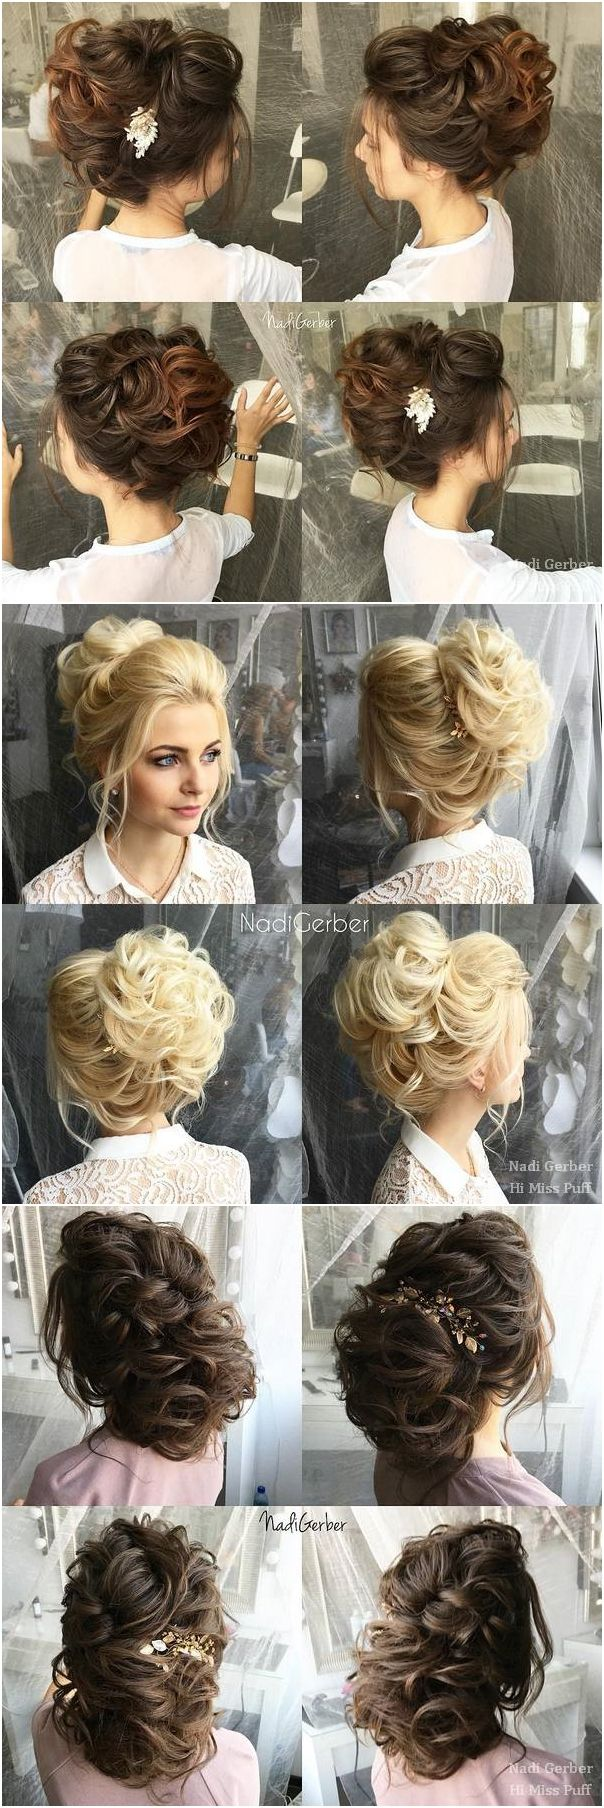 Wedding Hairstyles and Wedding Updos from Nadi Gerber  #wedding #weddinghairstyl...